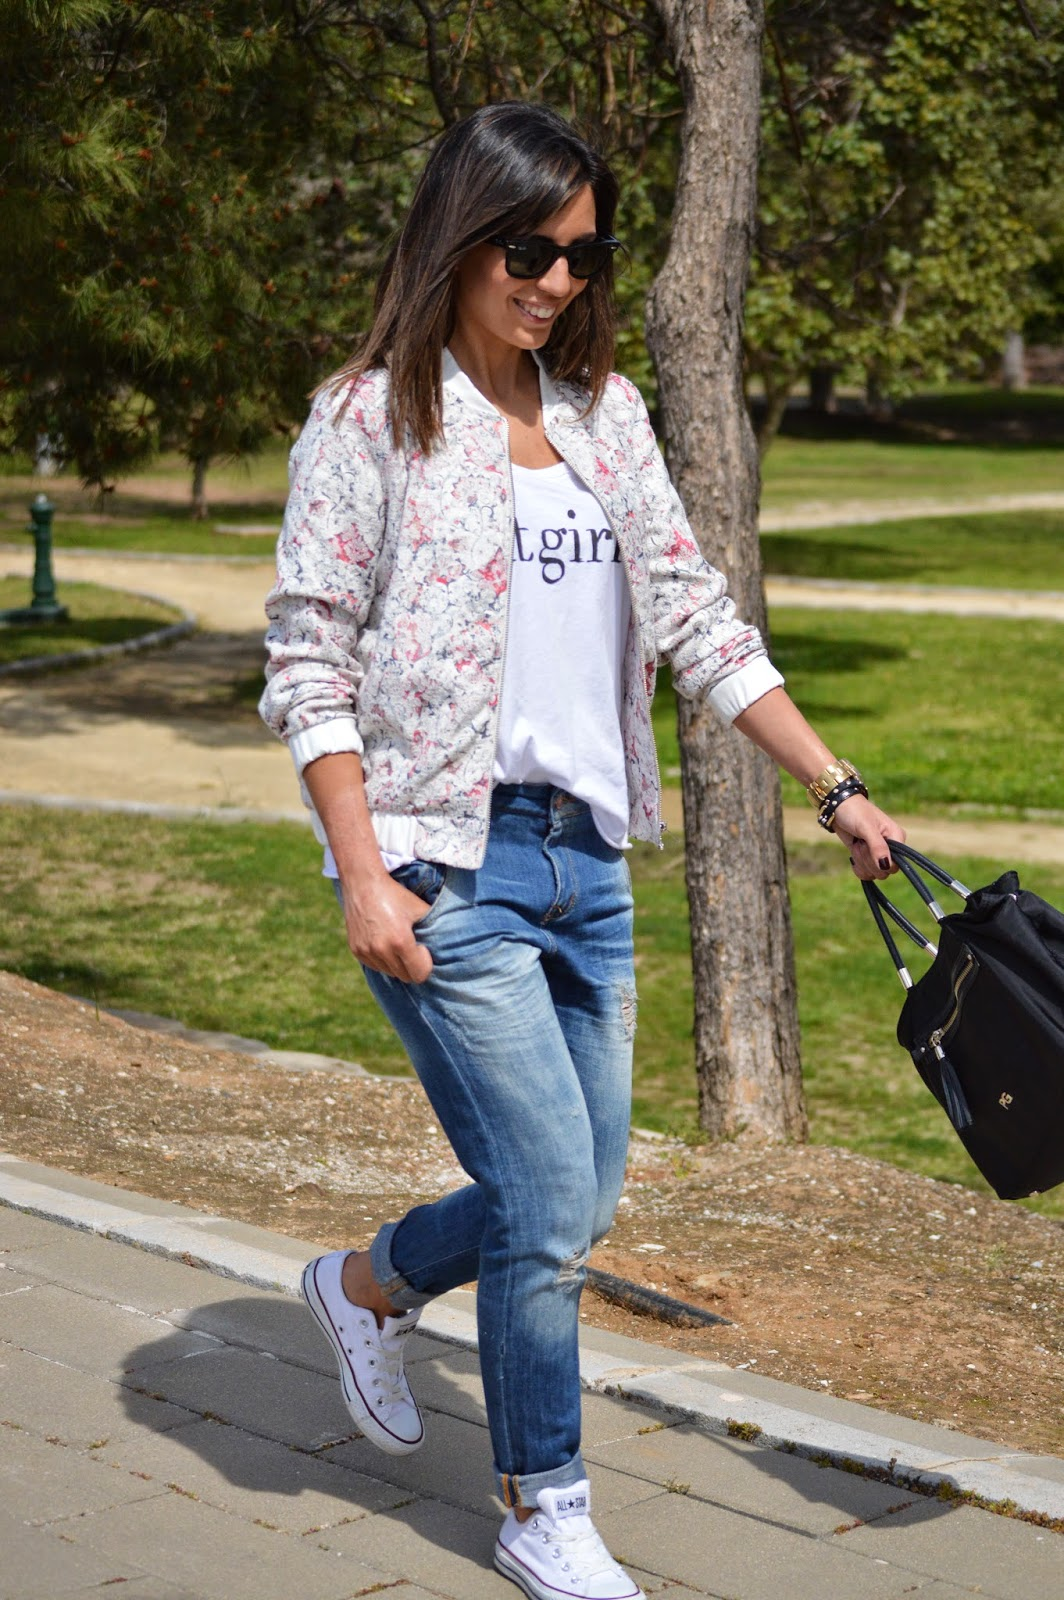 converse sporty chic street style style cristina style fashion blogger malagueña blogger malagueña zara mango boyfriends outfit chic look tendencias moda mood lovely bomber gorgeous inspiration